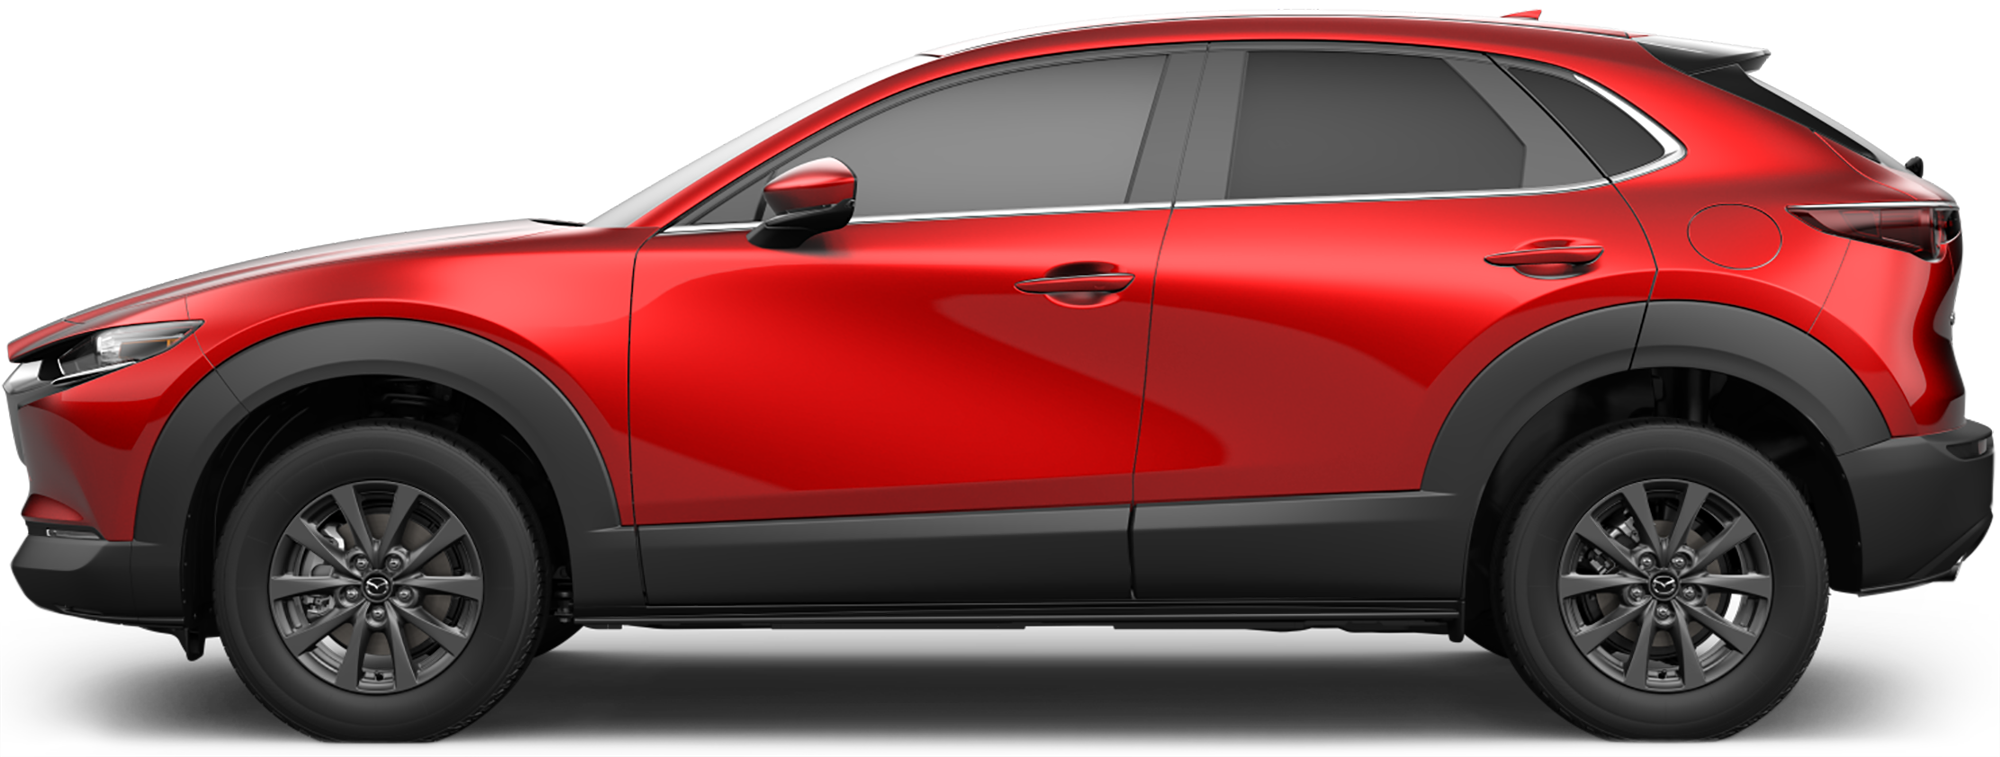 2021 Mazda Mazda CX-30 SUV Base